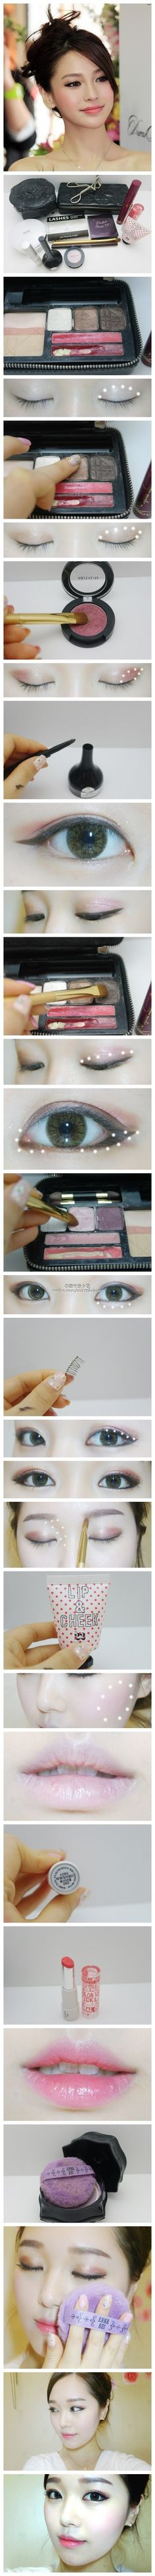 Korean make up http://hellomzkrystal.blogspot.com/